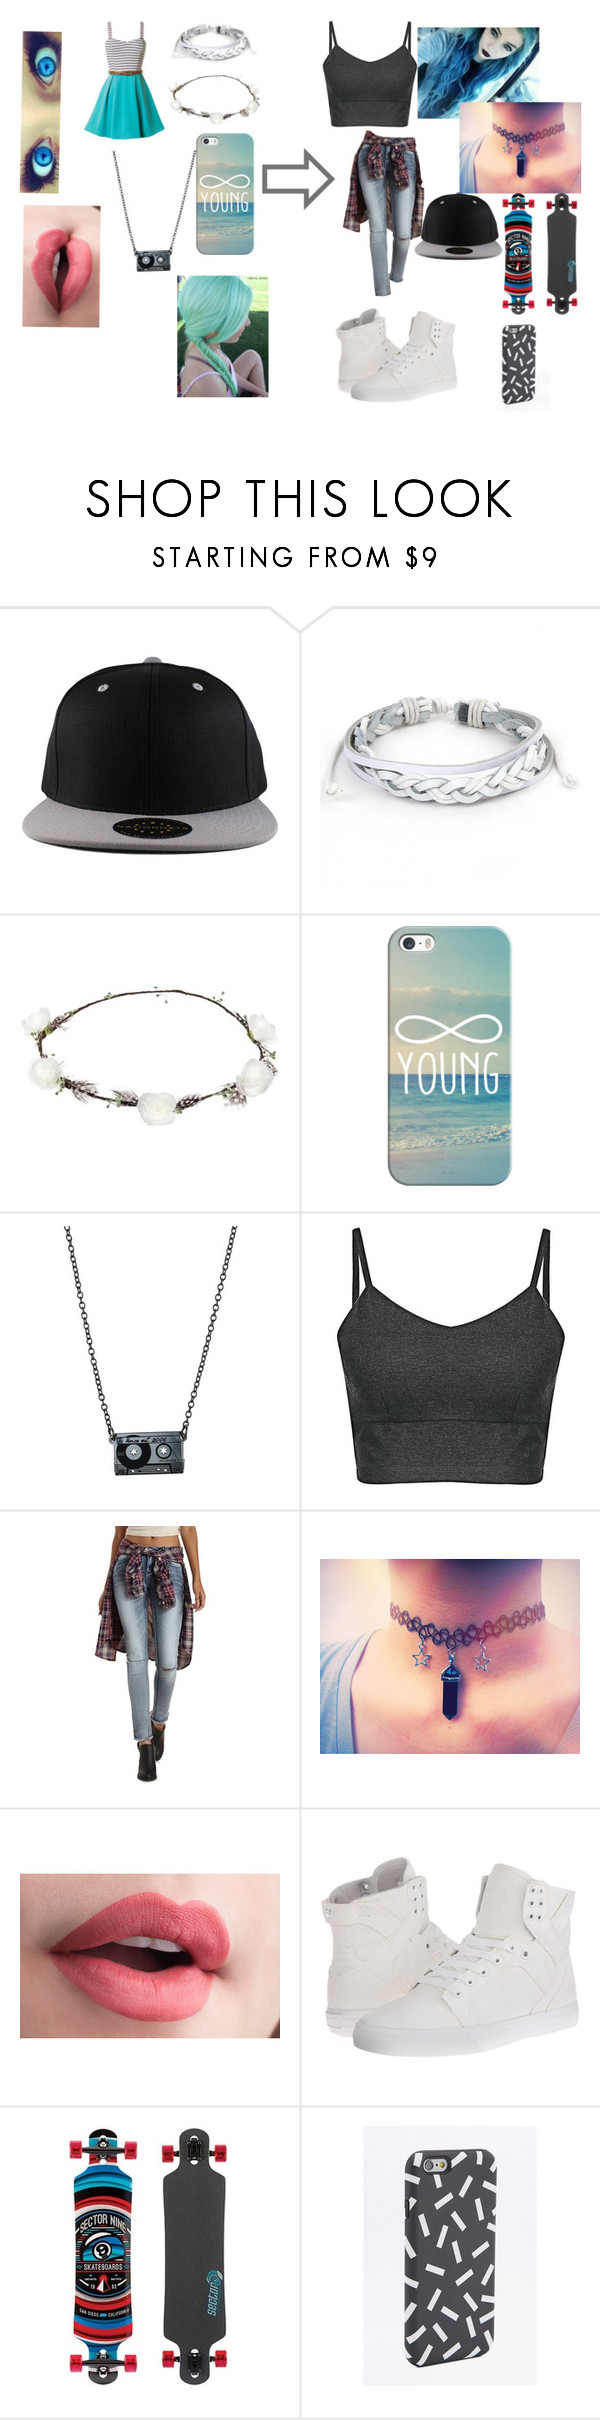 """Girly Girl To Swag Girl"" by sidemenfangirlforlife ❤ liked on Polyvore featuring West Coast Jewelry, Lipsy, Casetify, Refuge, Supra, Sector 9 and Swag My Case"